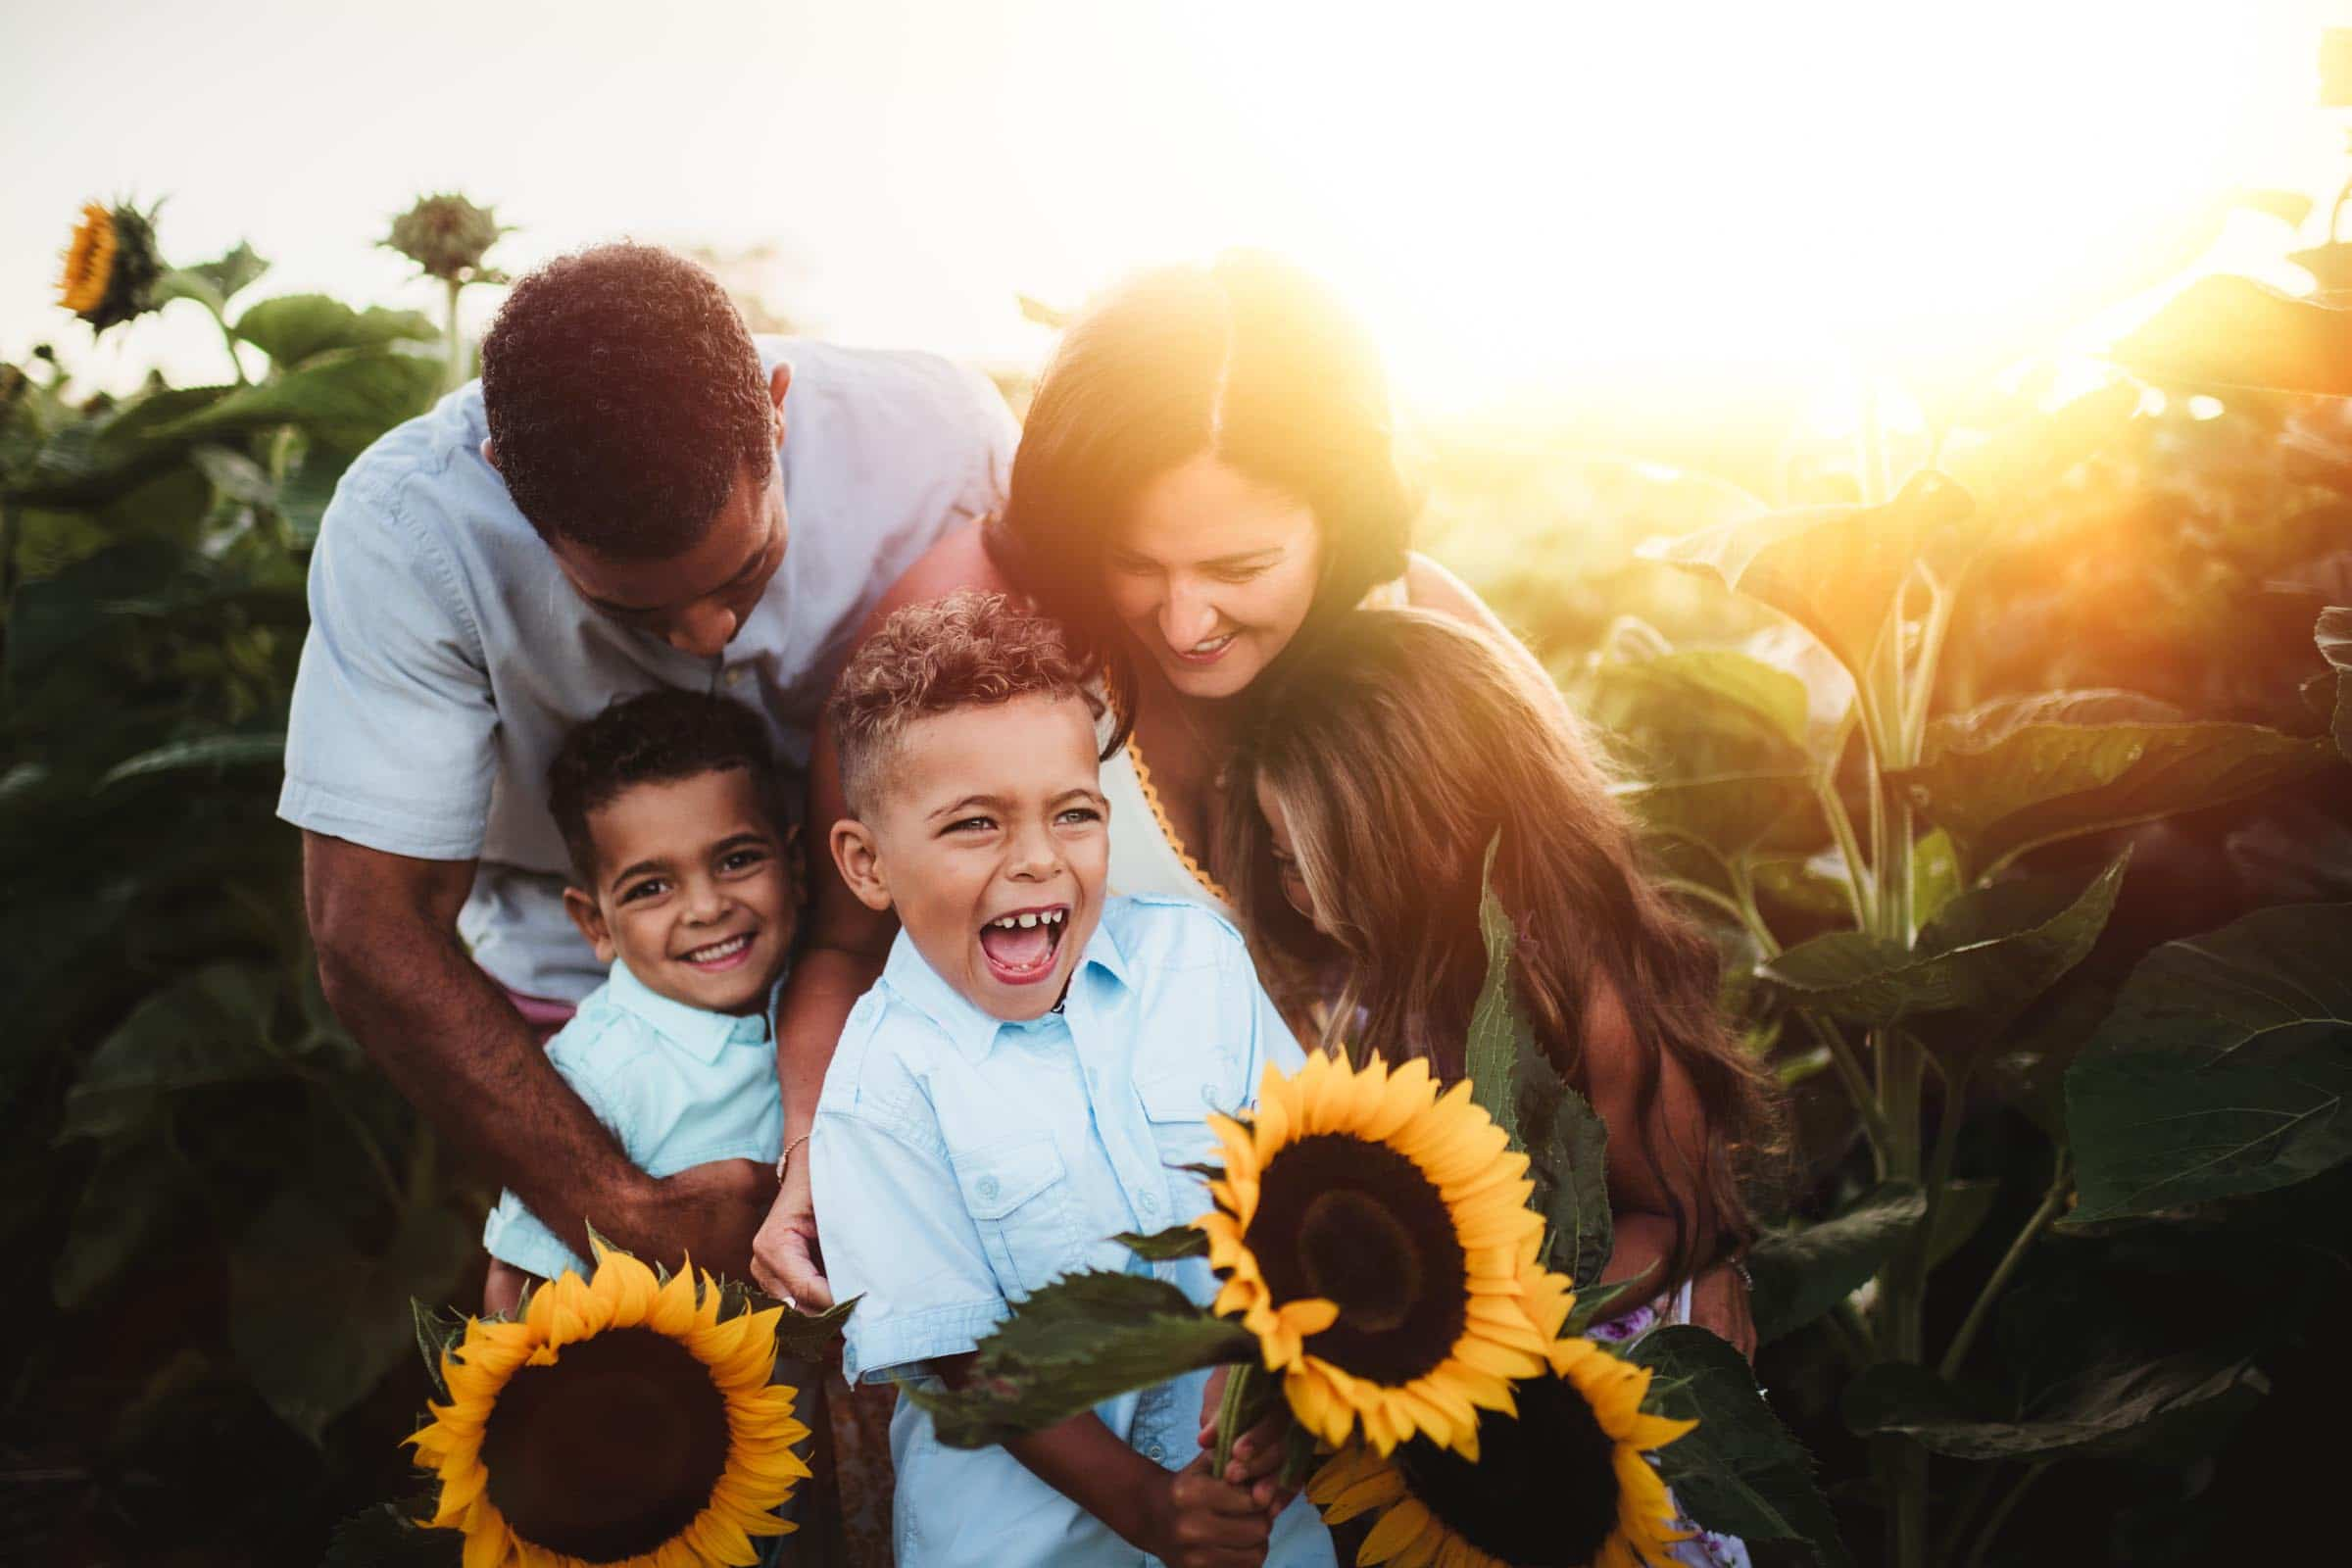 Family in Sunflowers at Sunset